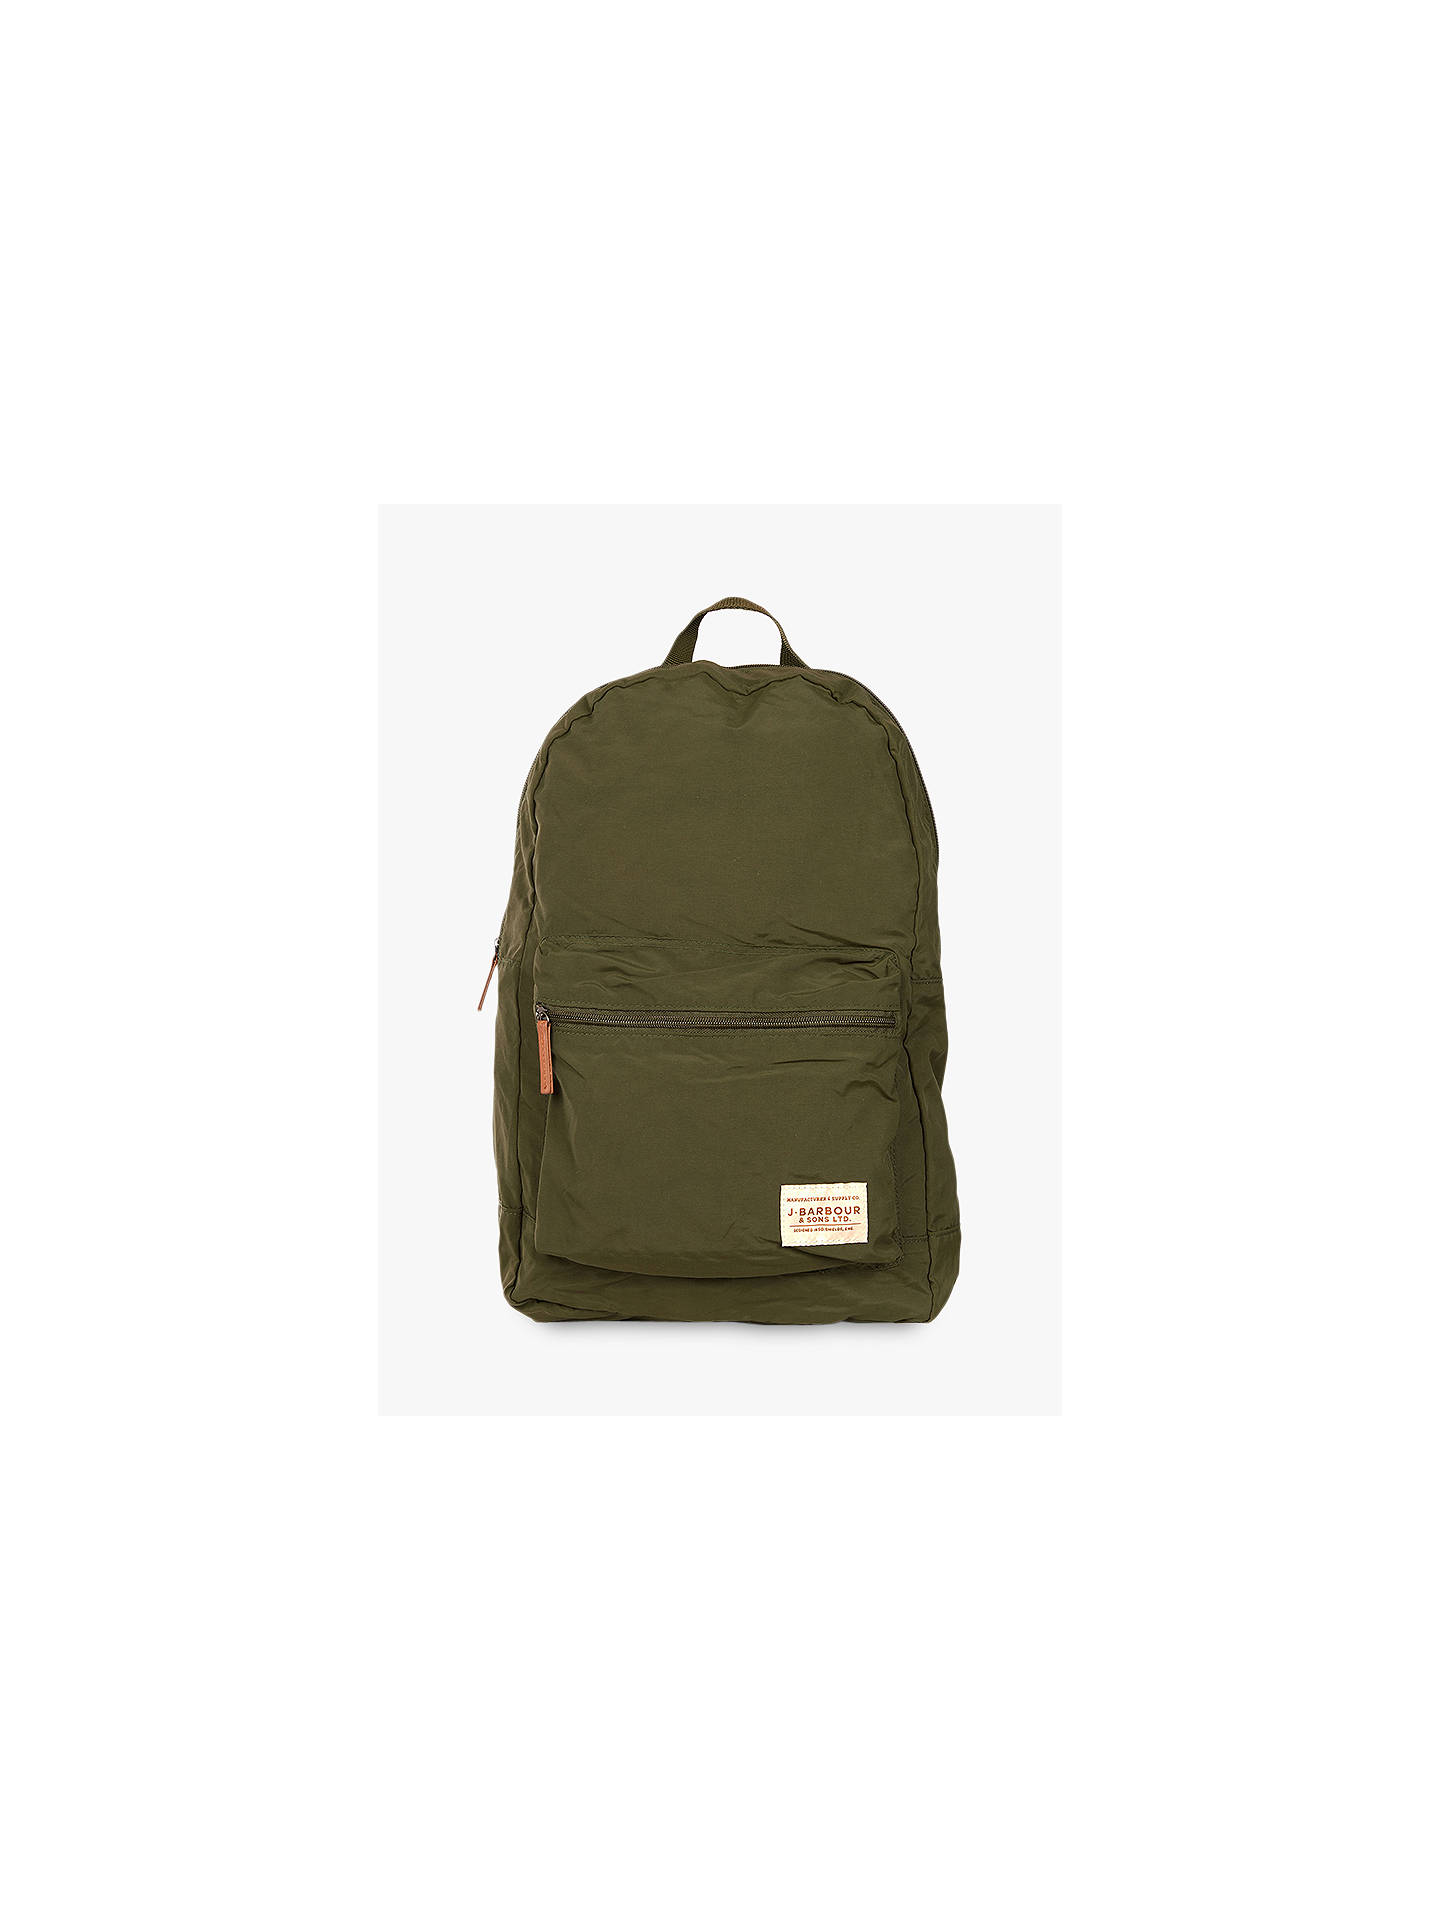 Buy Barbour Beauly Lightweight Backpack 1c63fac08a4f9